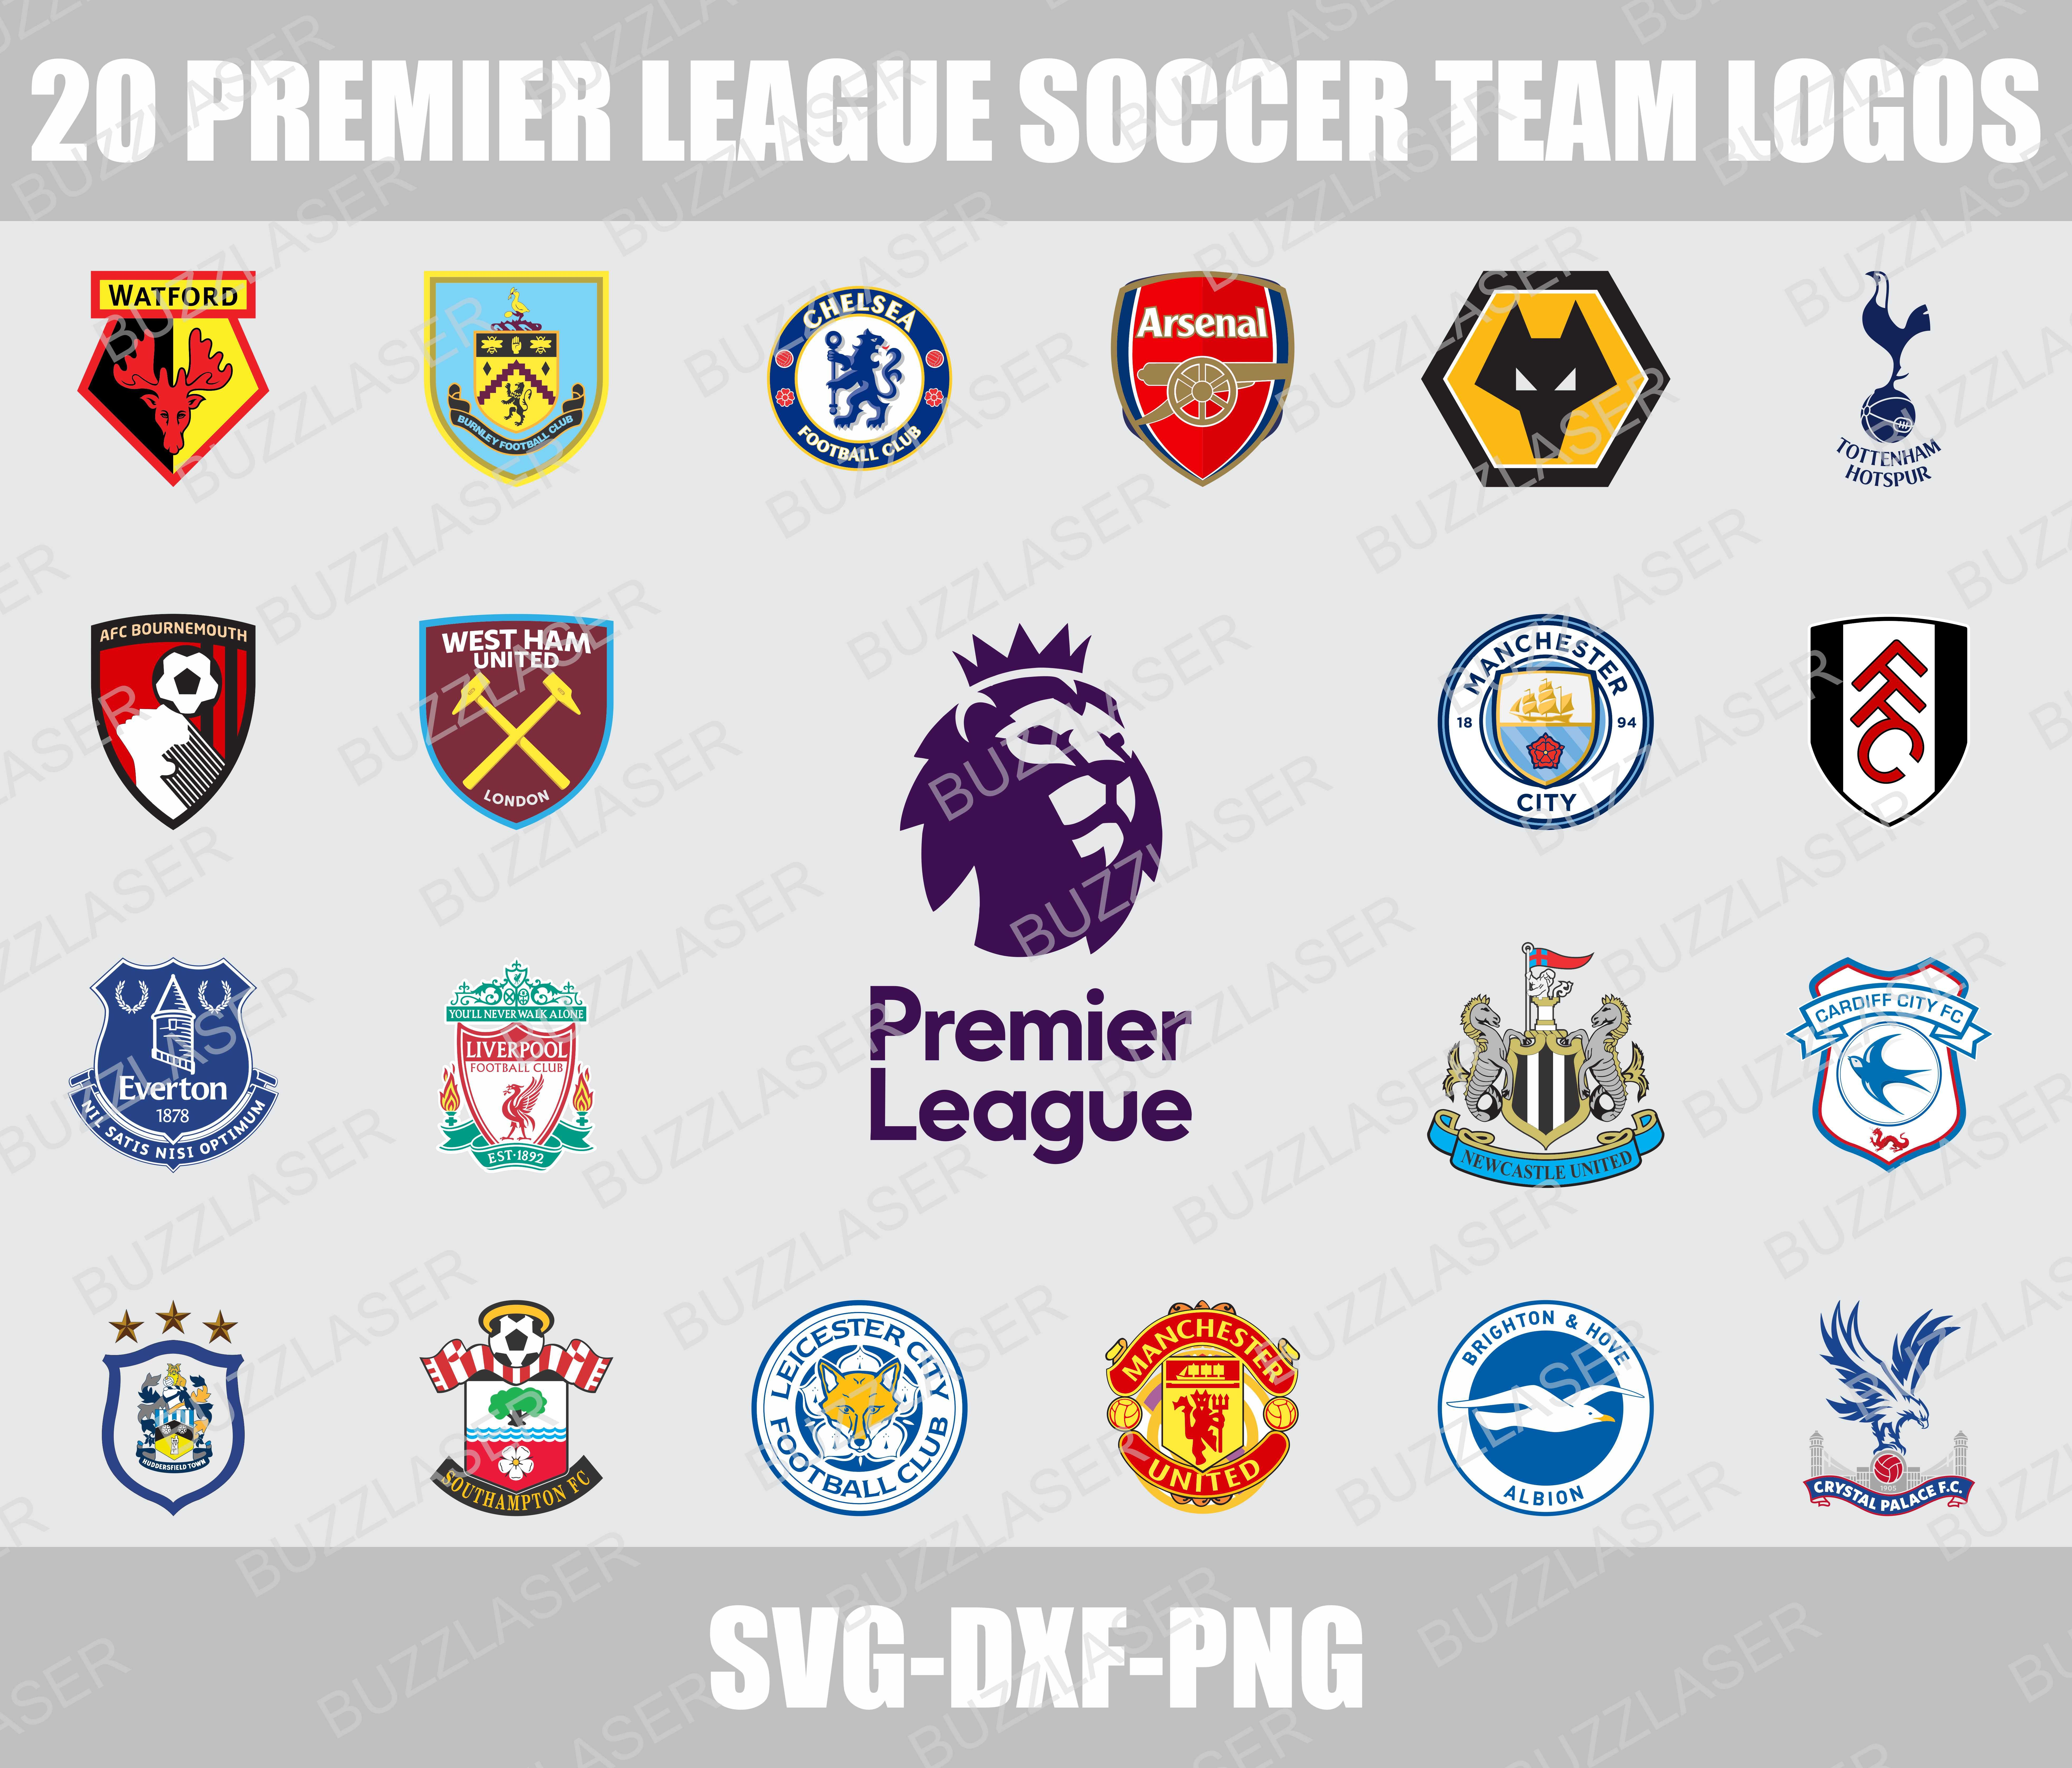 Pin by Buzz Laser on SOCCER TEAM LOGOS.